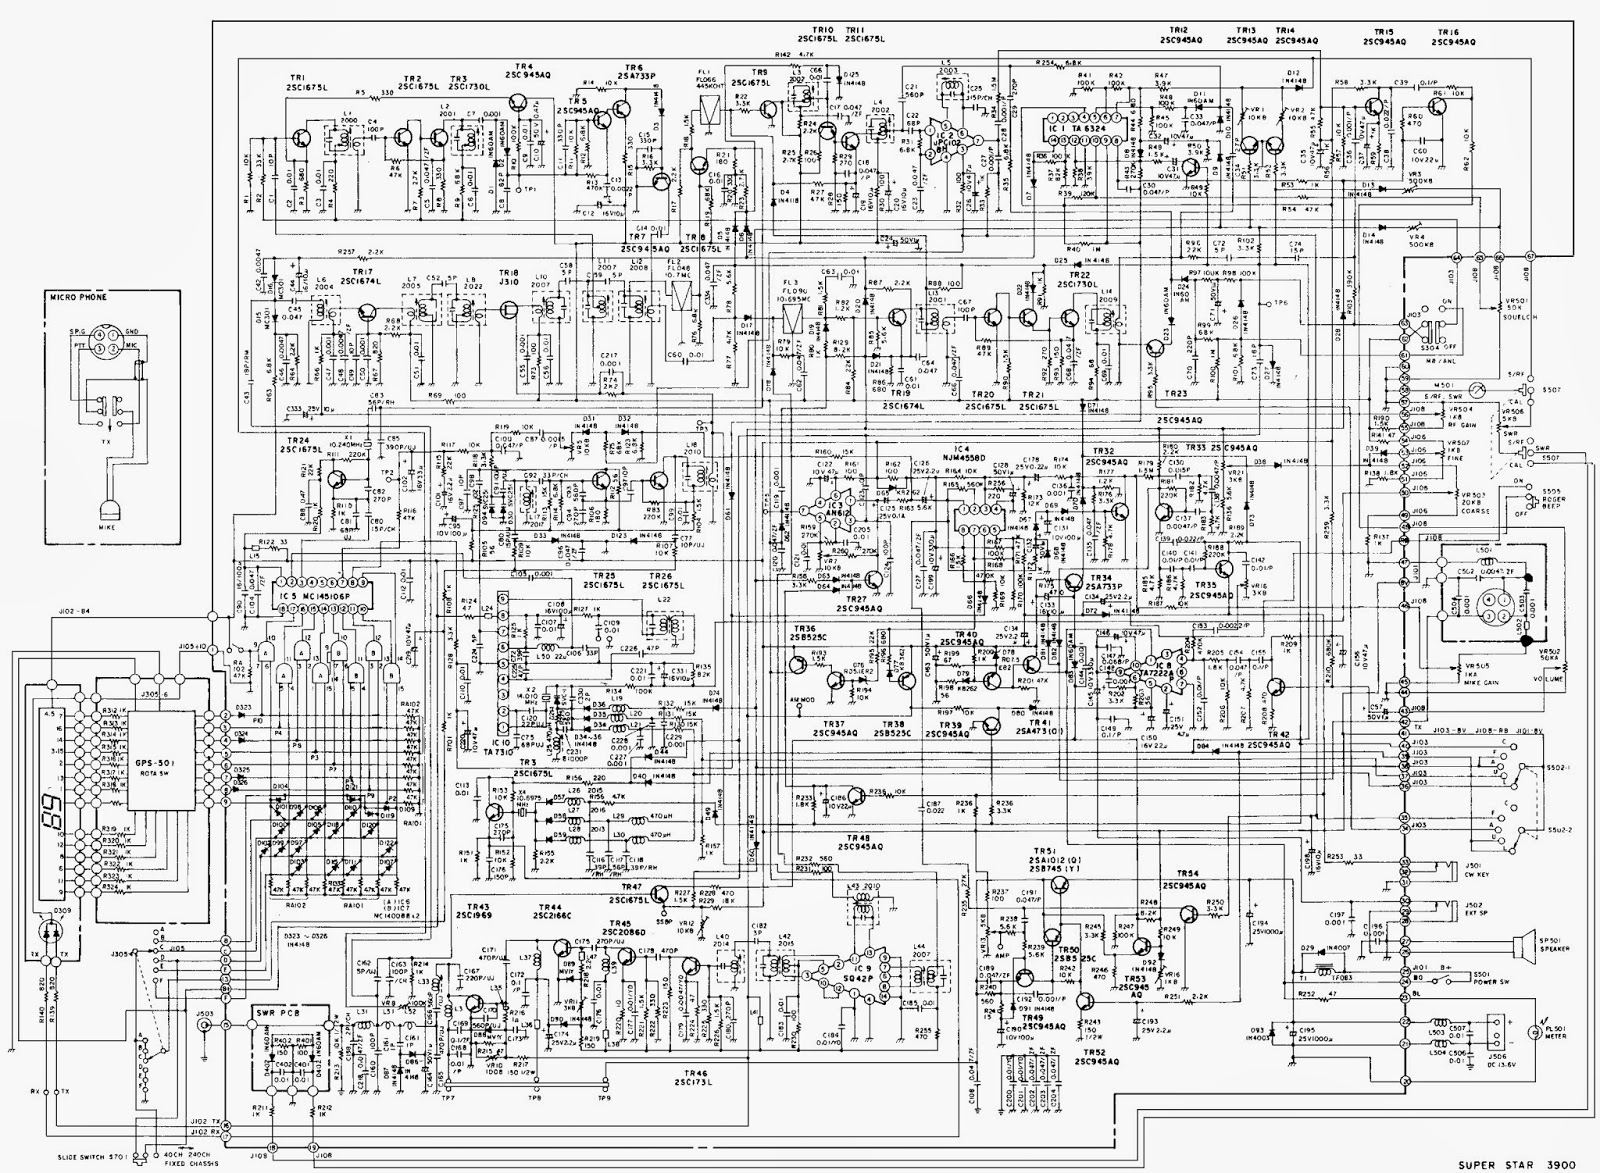 eagle cb radio wiring diagram international get free image about wiring diagram